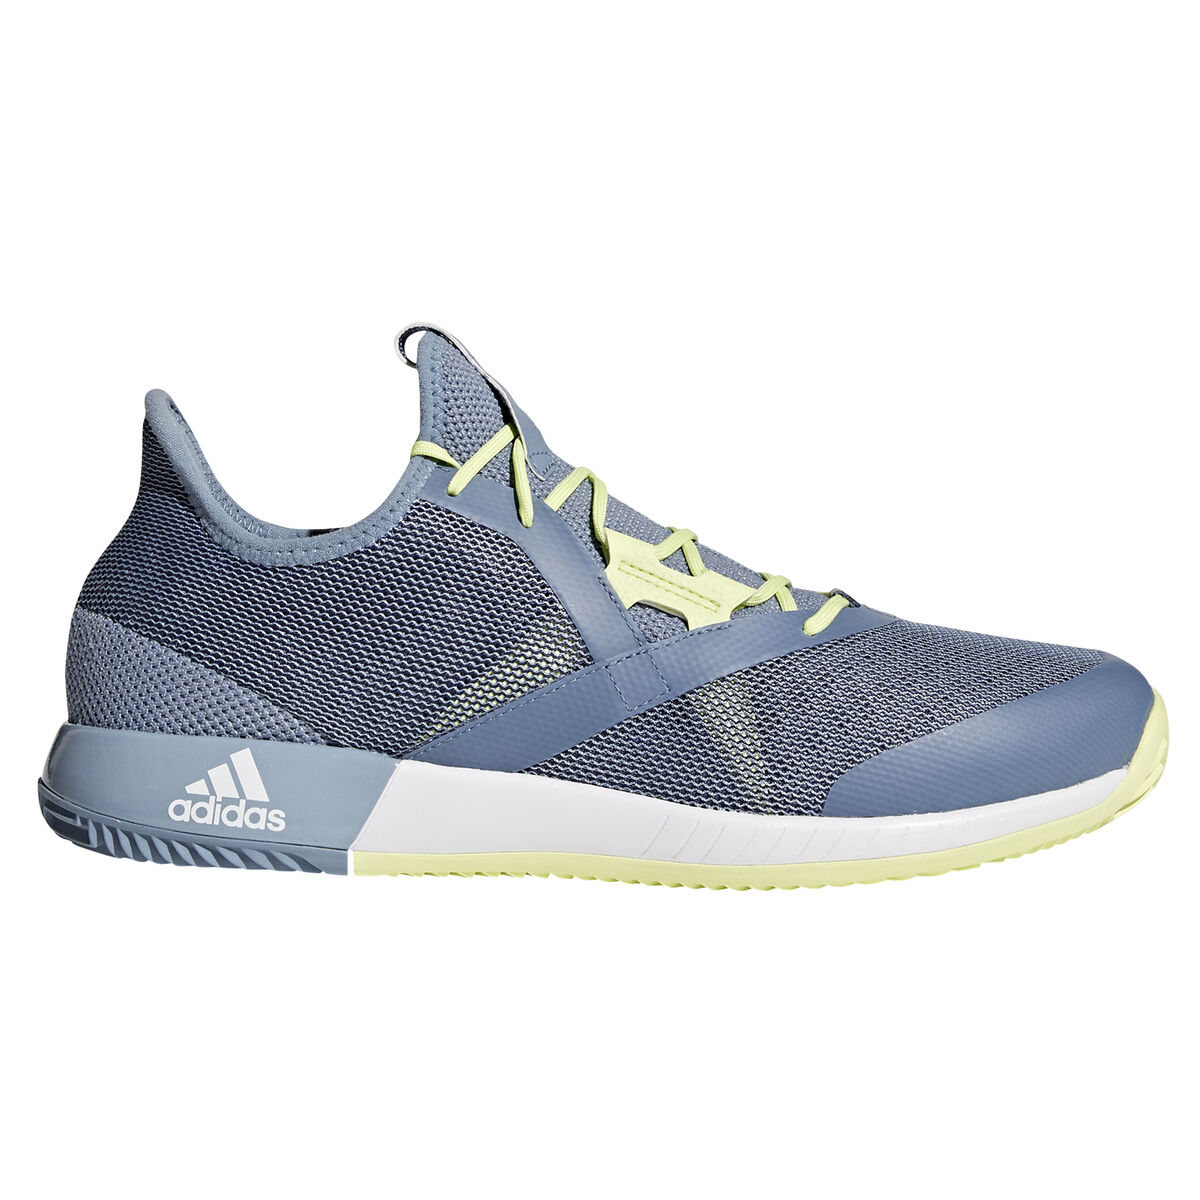 the best attitude a1202 82492 Images. adidas adizero Defiant Bounce Men39s Tennis Shoe - Grey